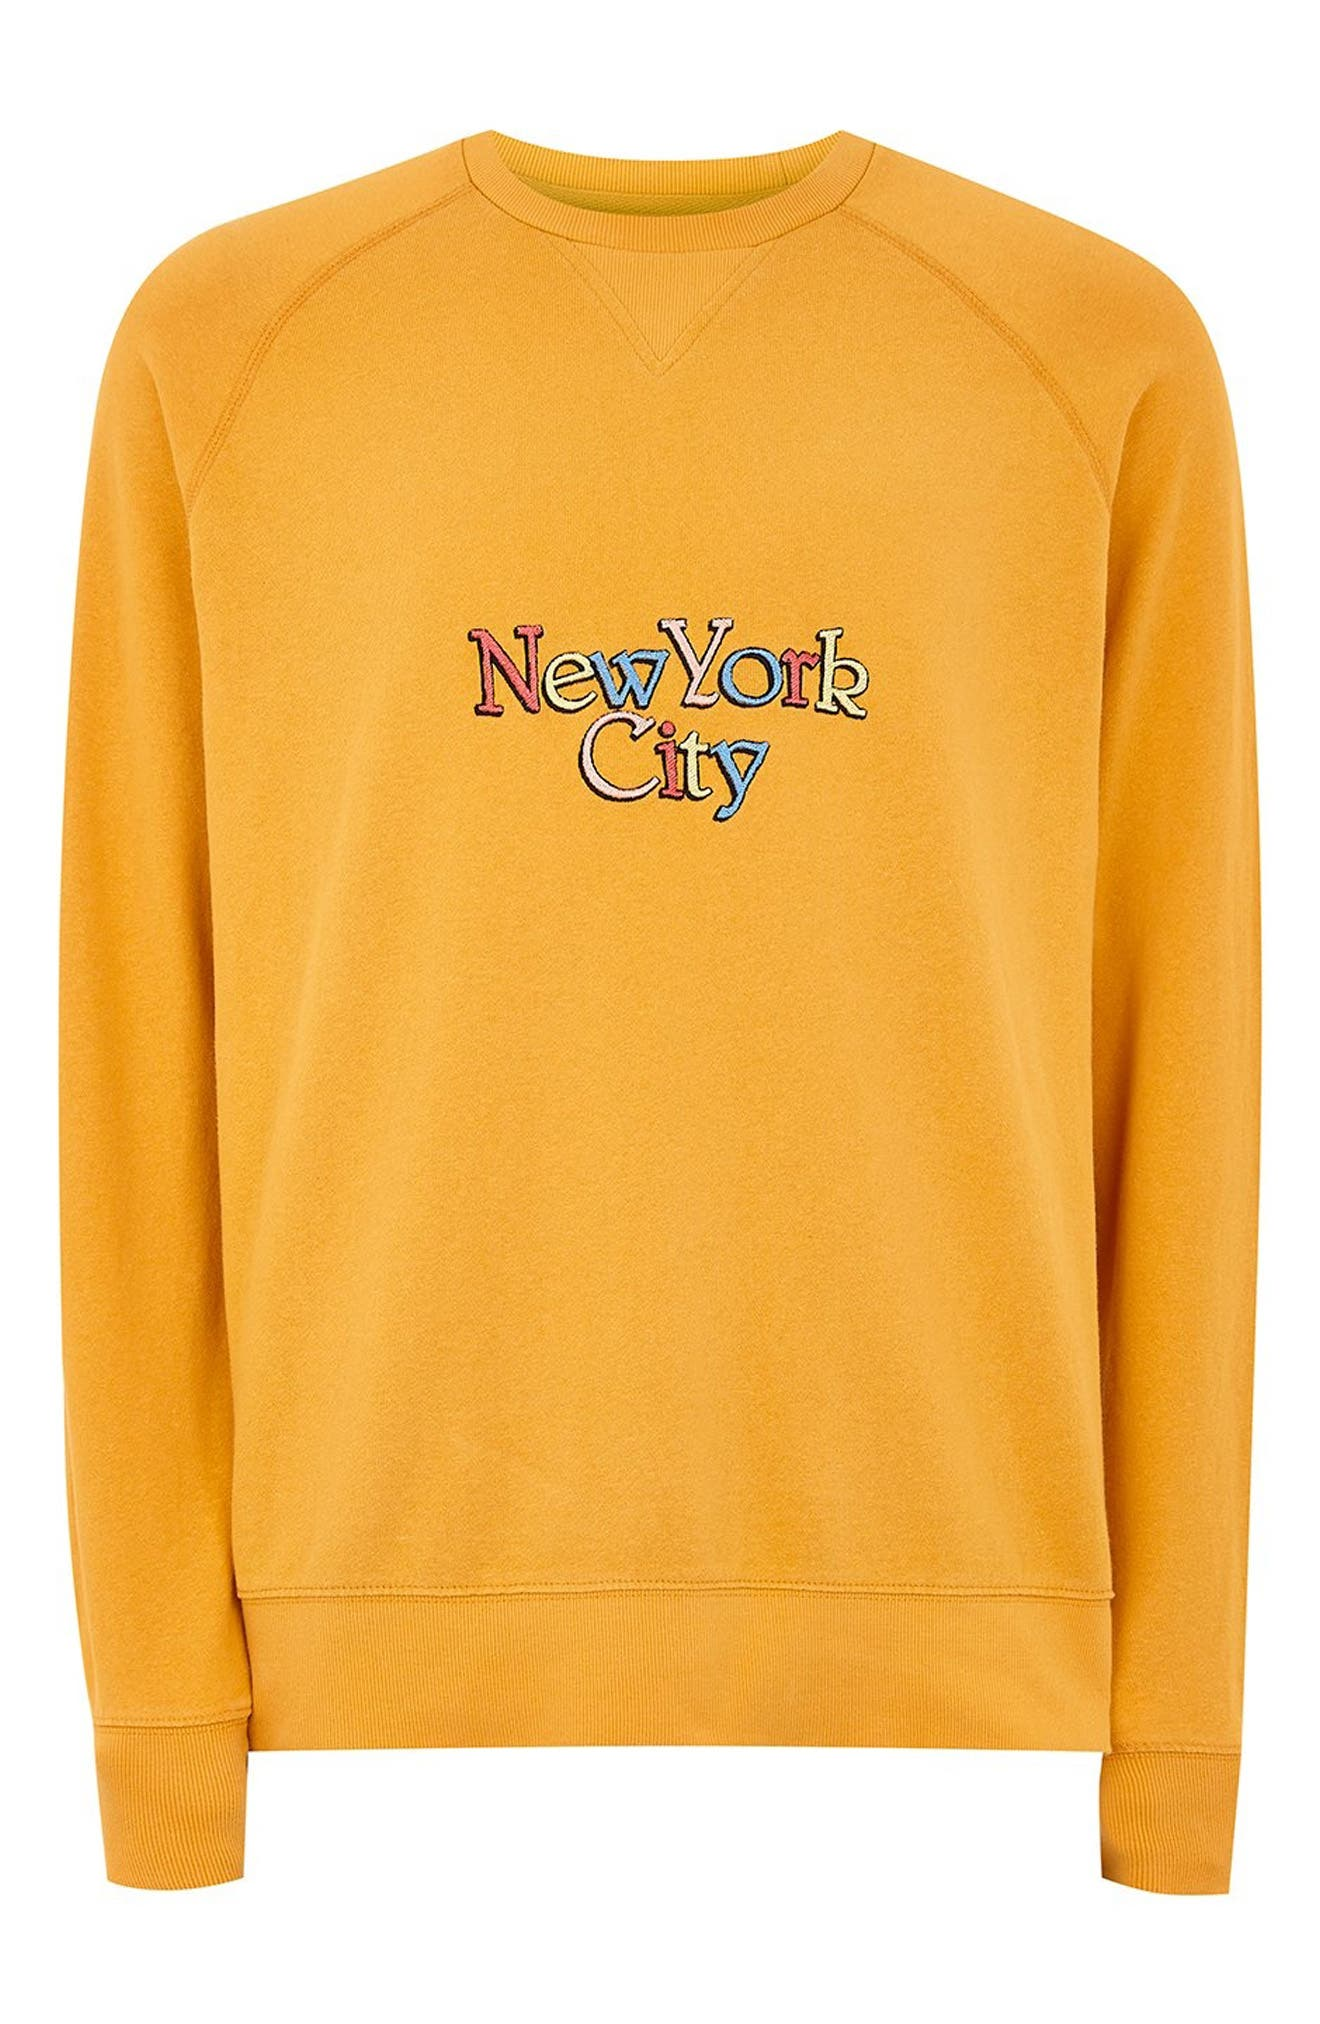 New York Classic Sweater,                             Alternate thumbnail 4, color,                             700